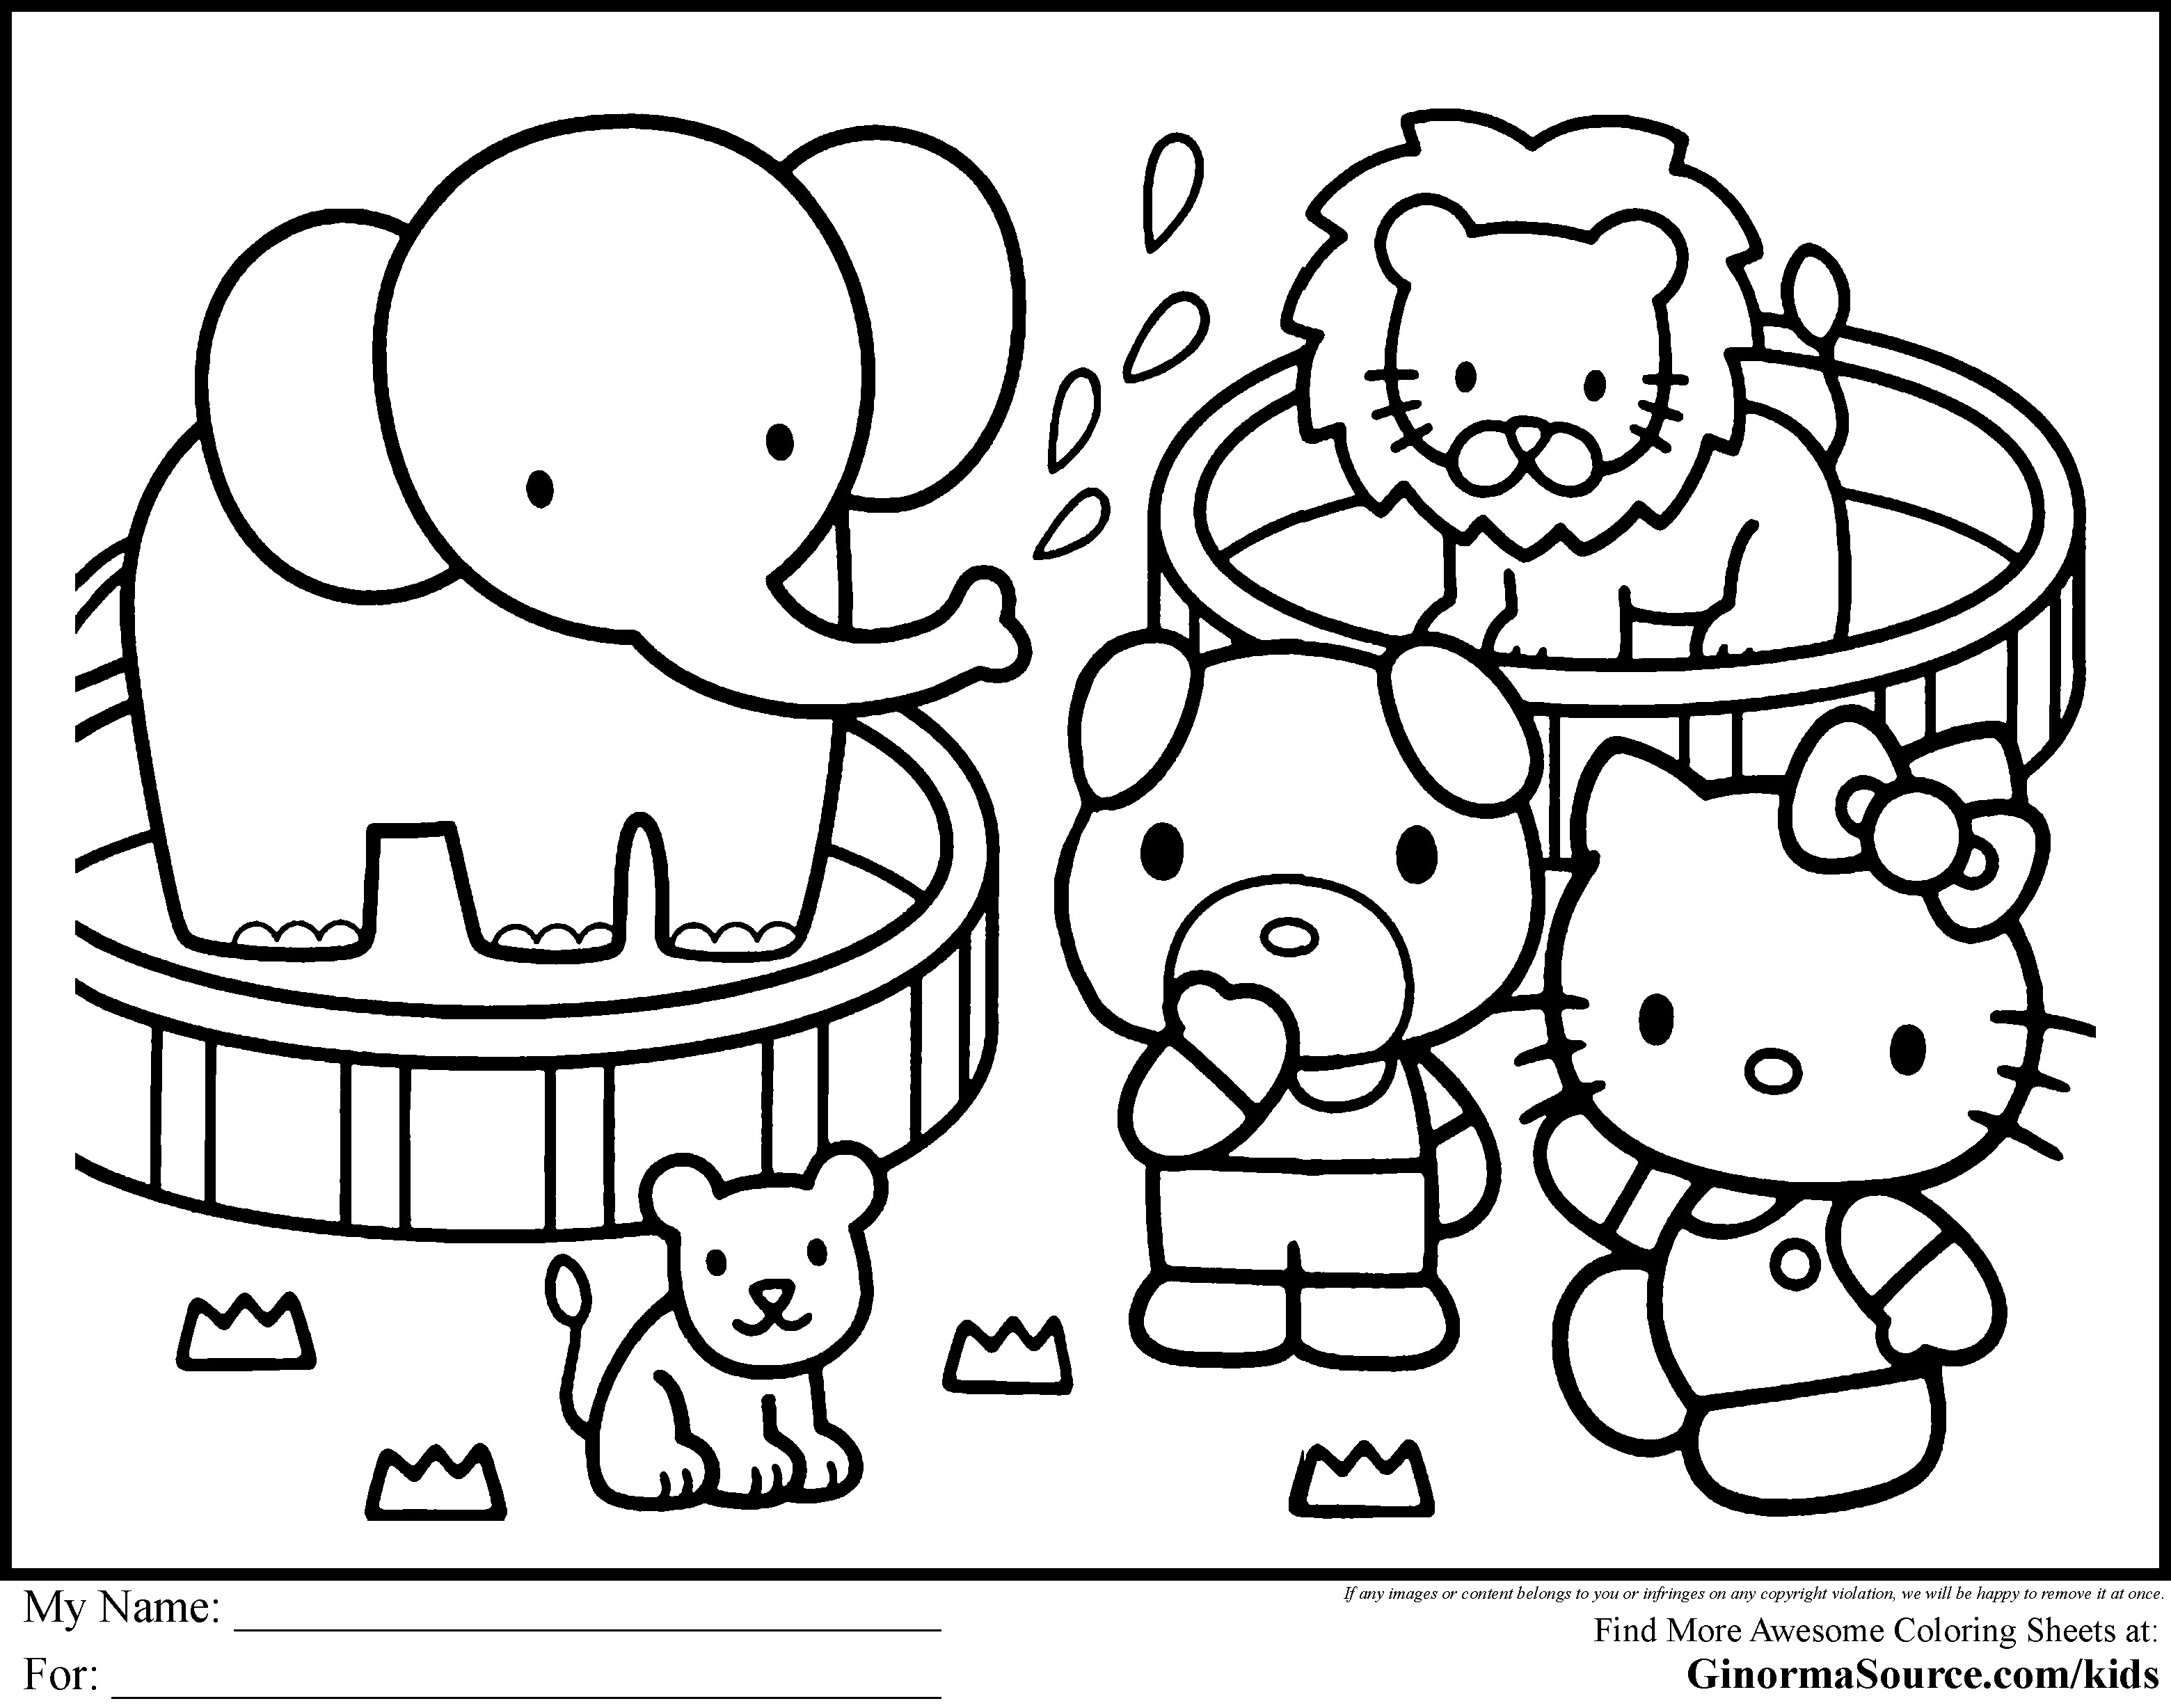 3120x2455 Hello Kitty Coloring Pages Pdf My Free Printable At Auto Market Me